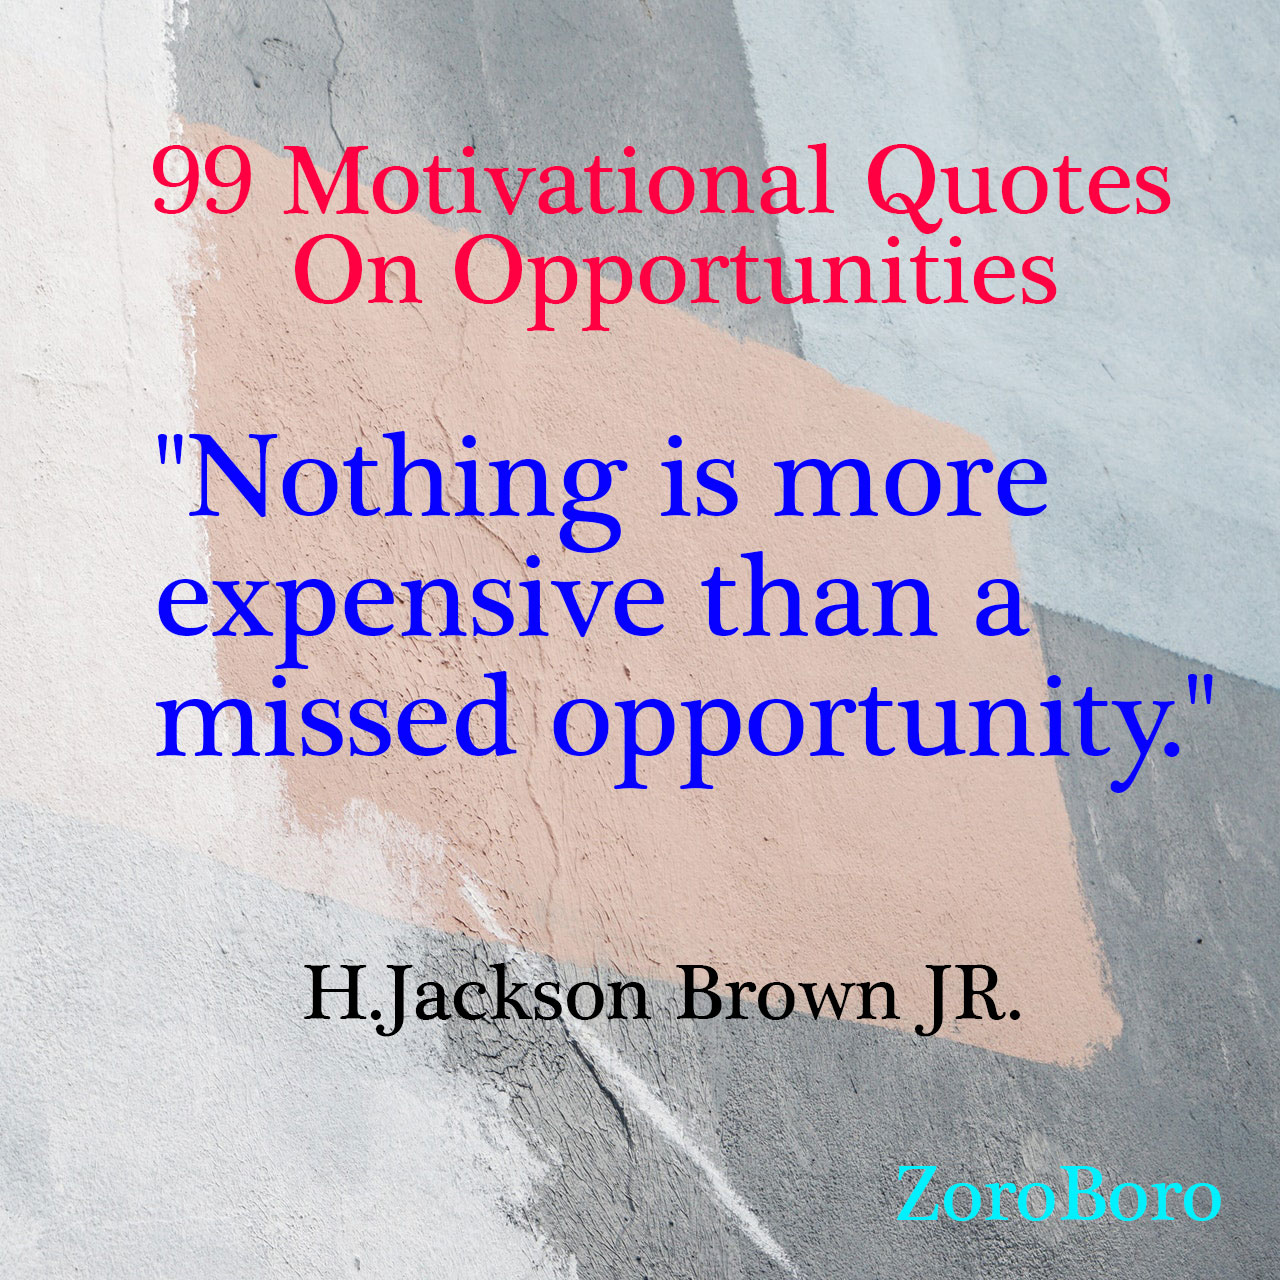 99 Motivational Quotes On Opportunities Opportunity Quotes